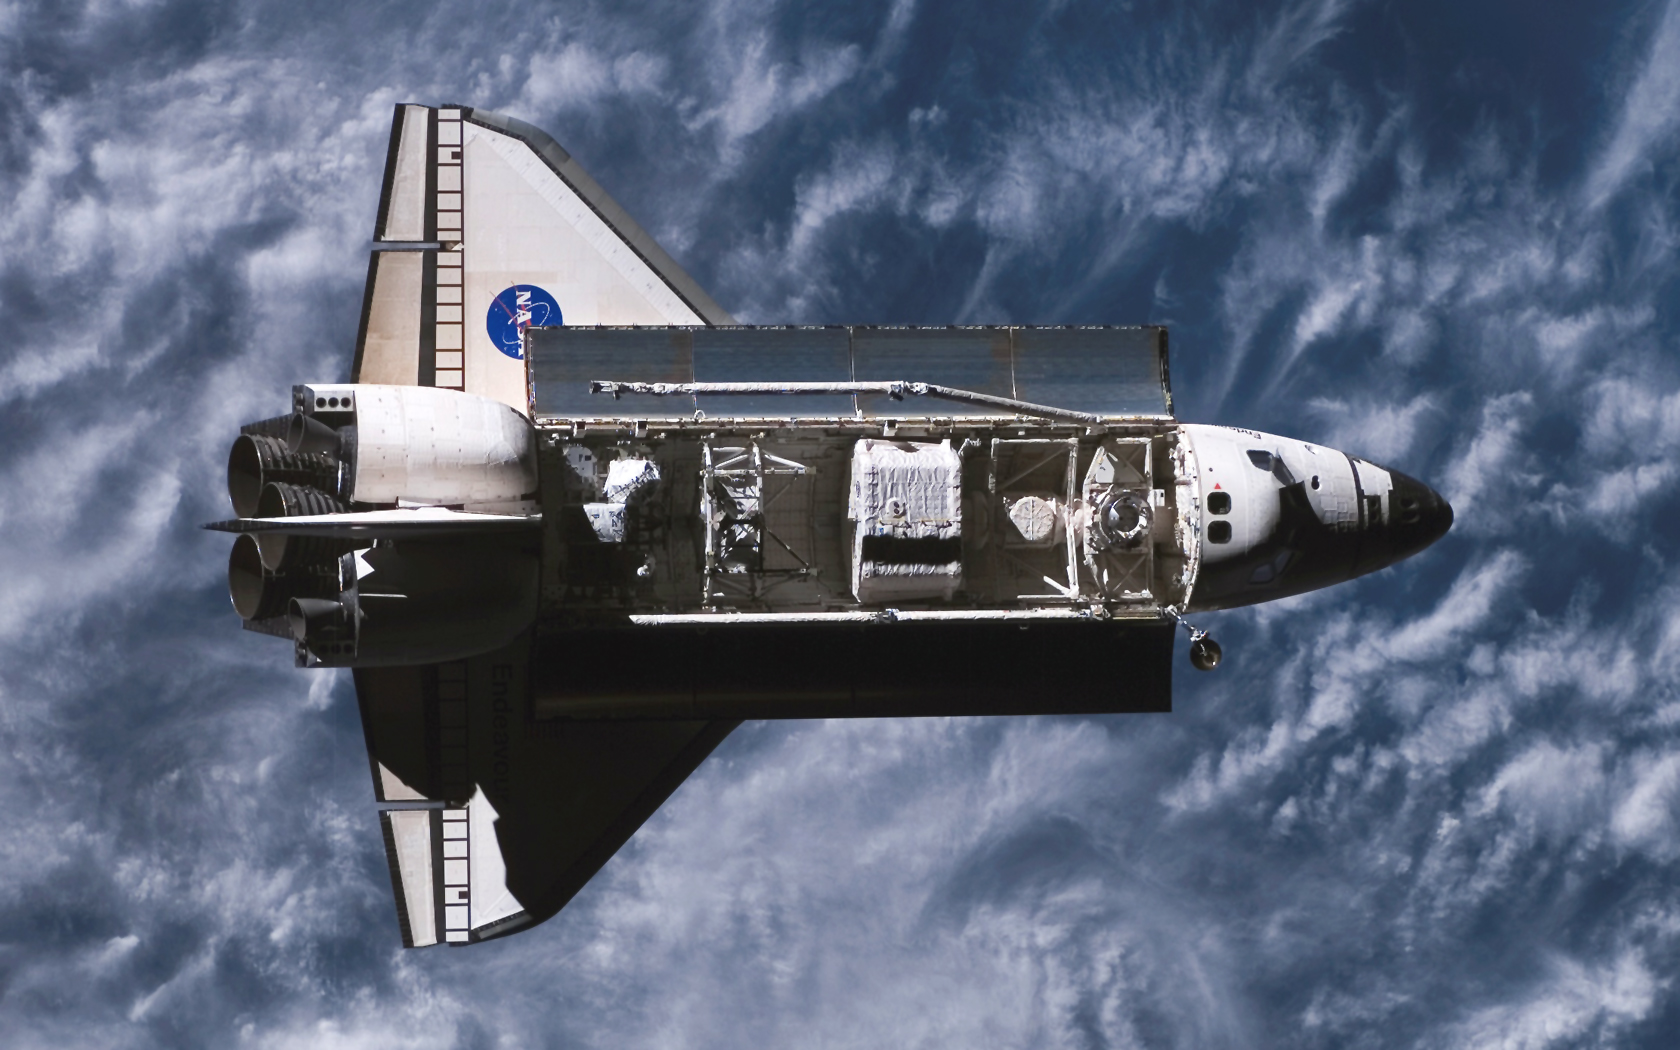 space shuttle vehicles - photo #46